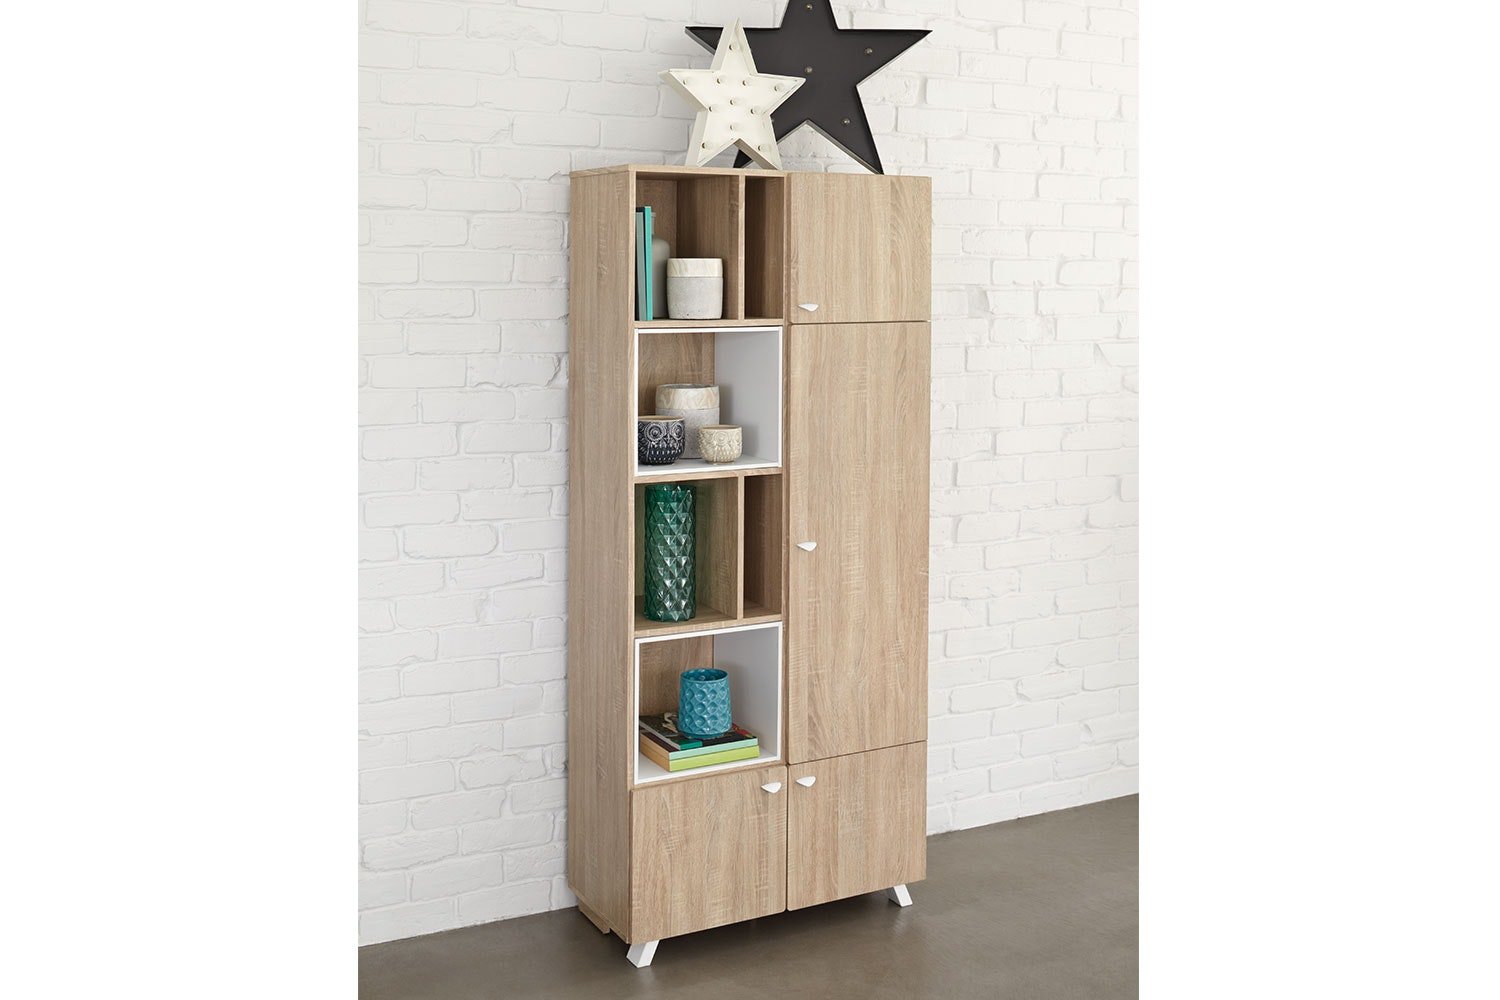 Maali Bookcase by Stoke Furniture